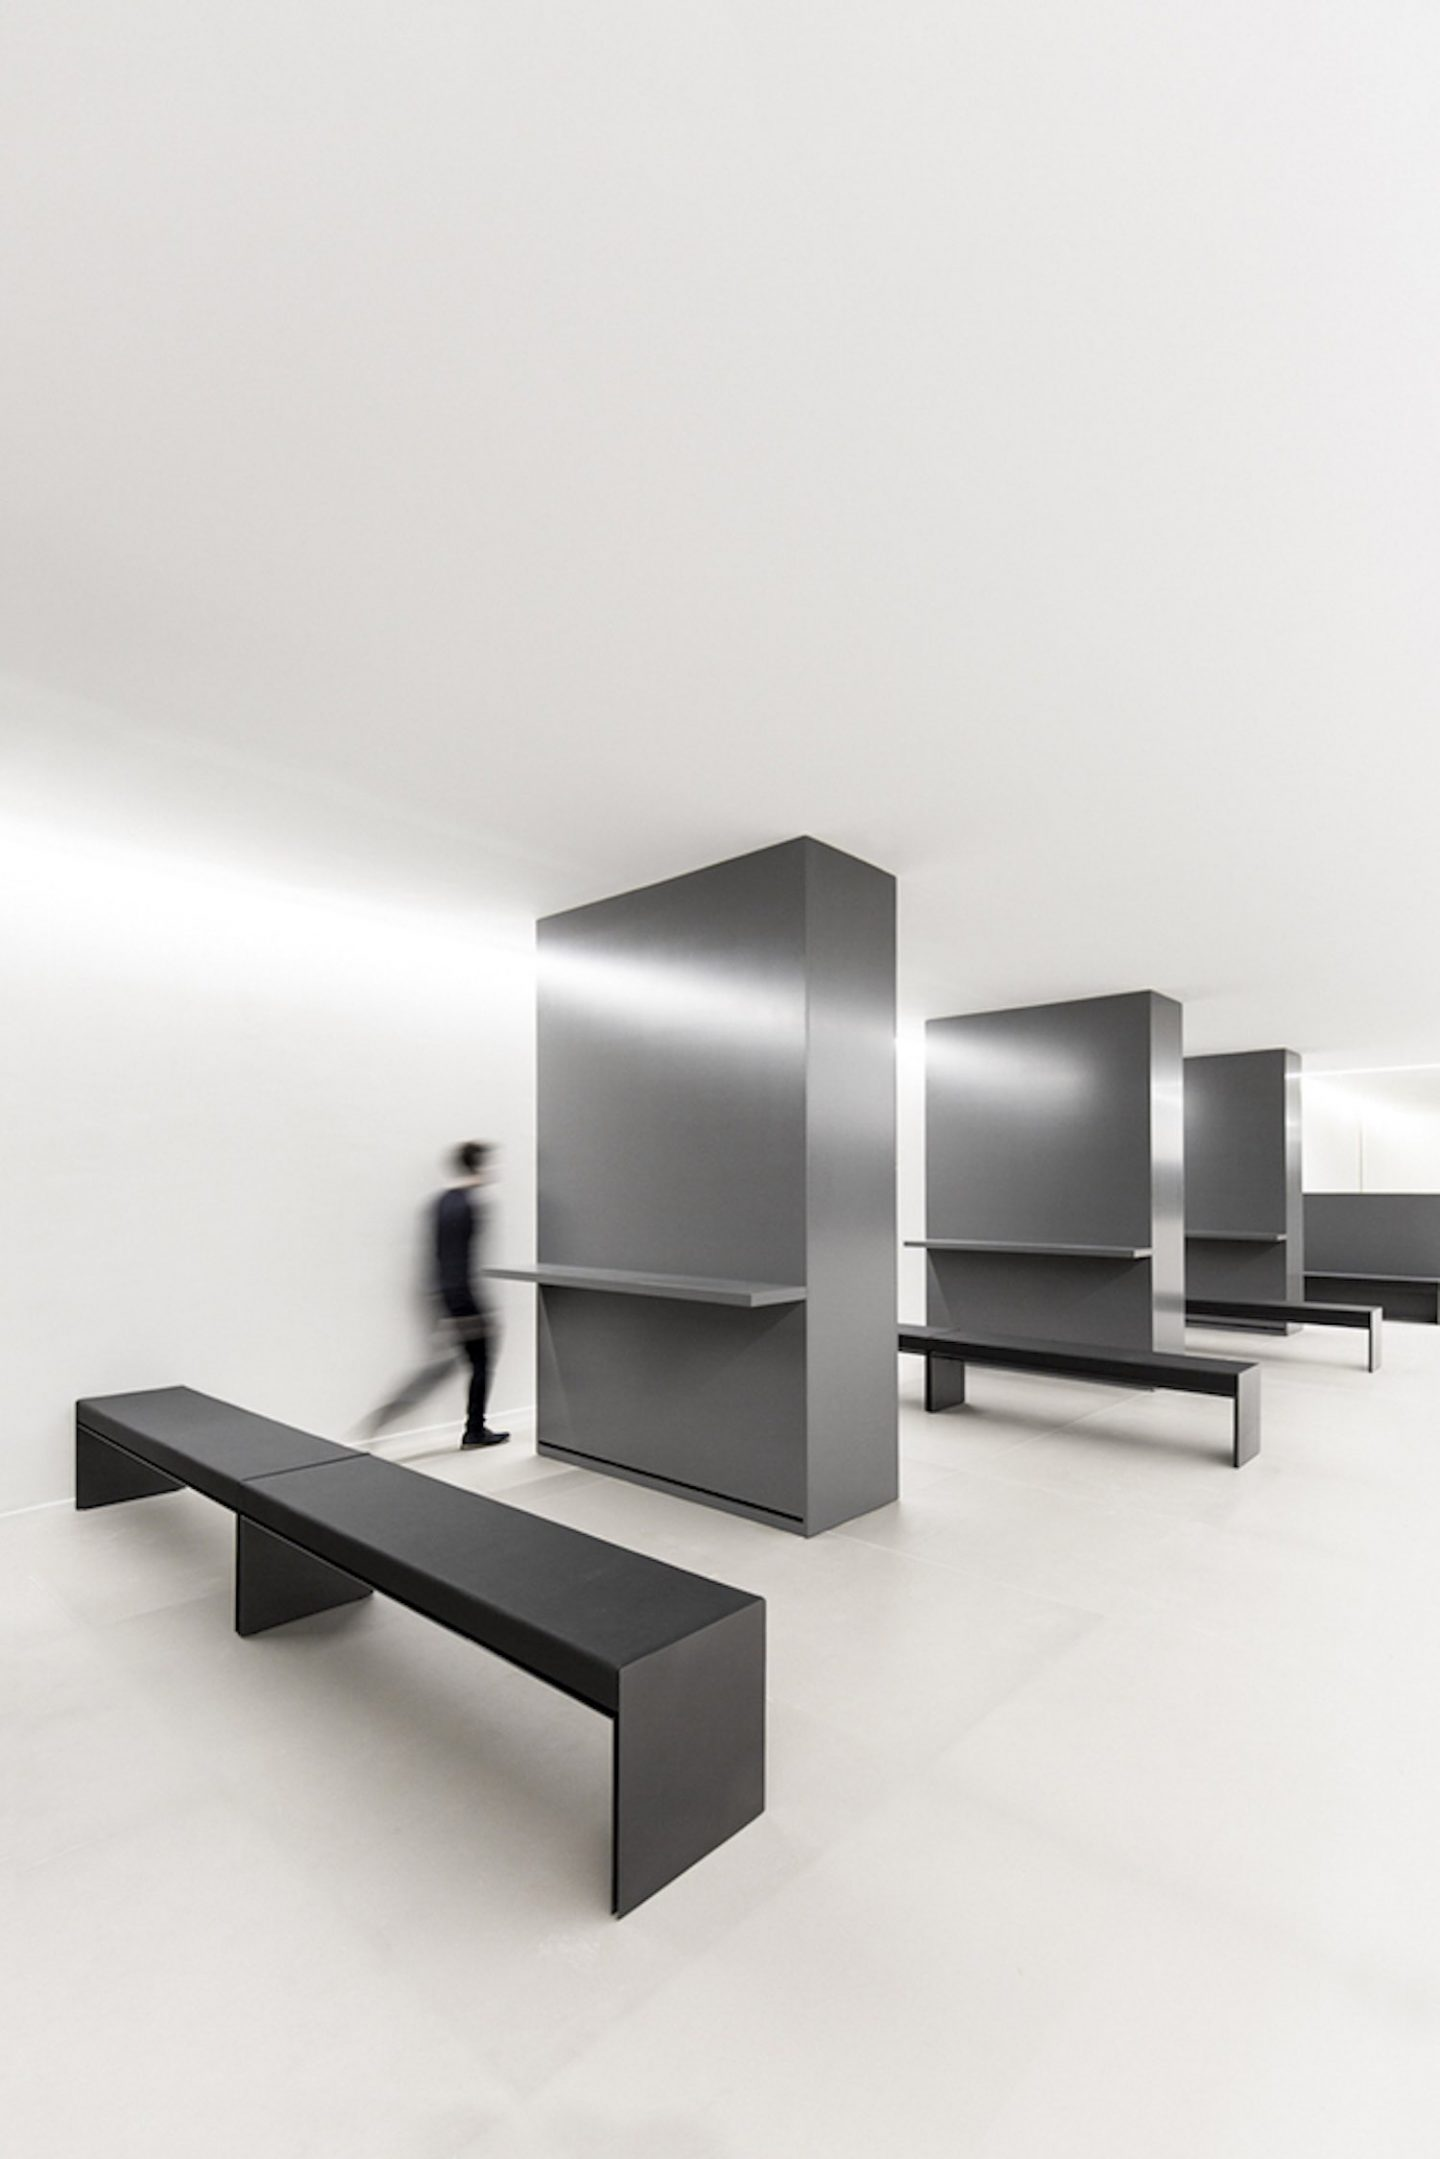 ignant_architecture_fran_silvestre_offices_009